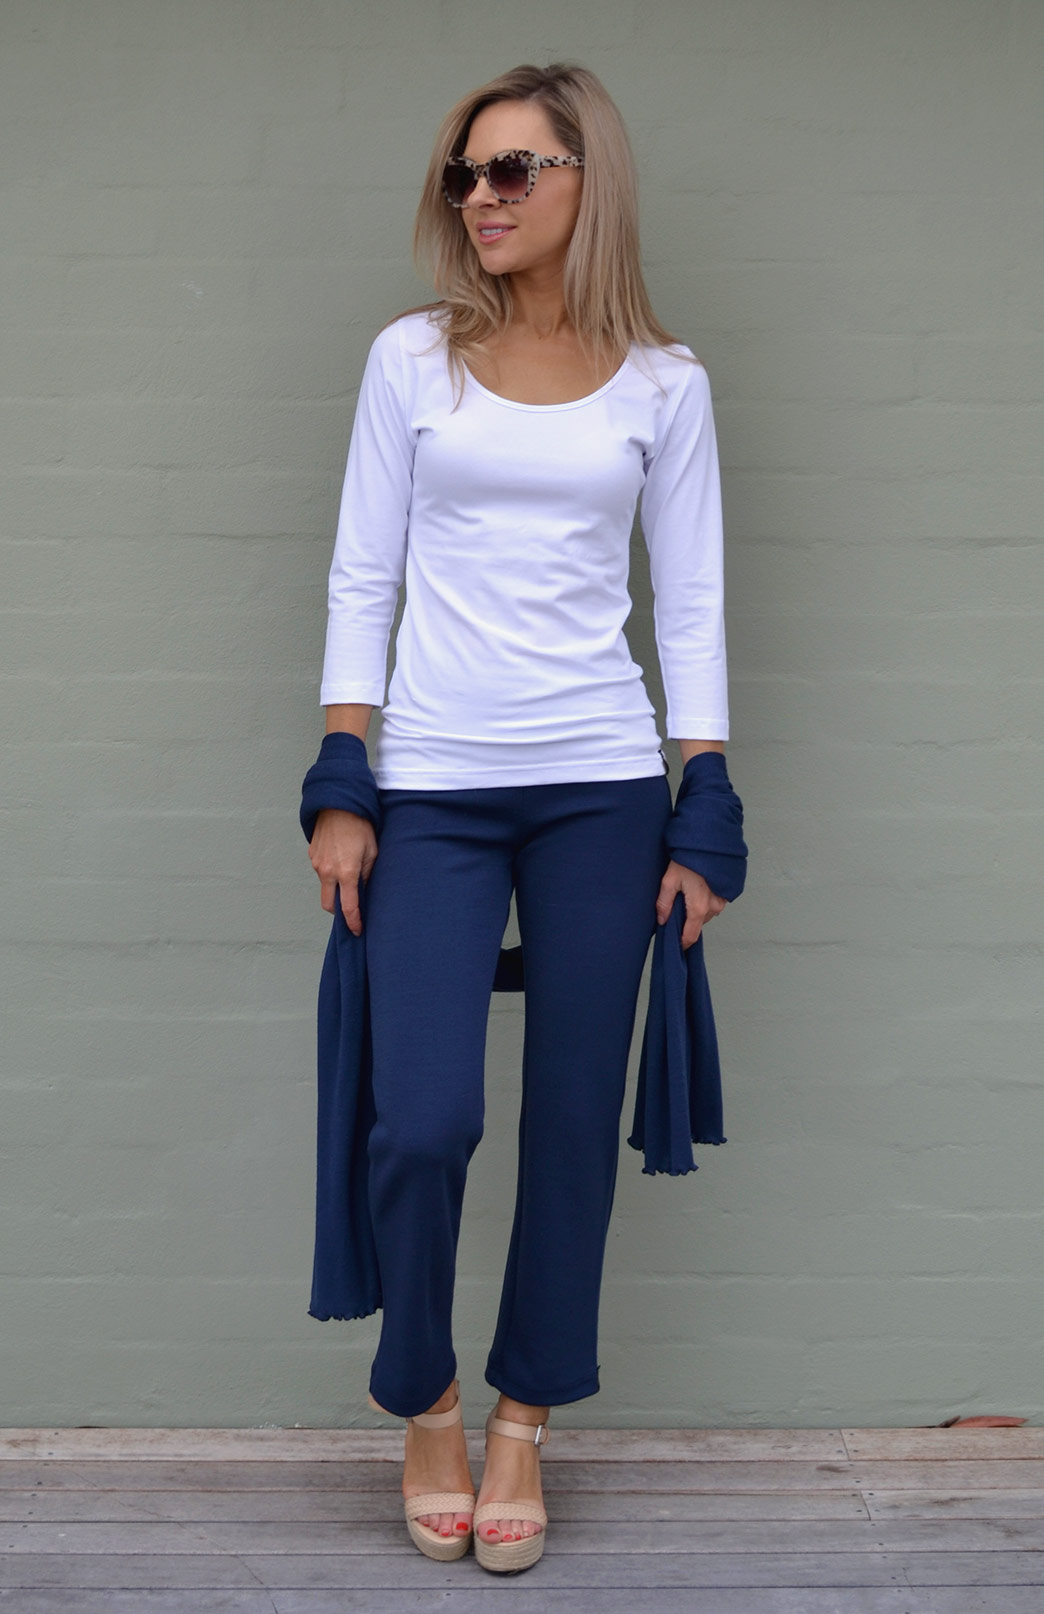 Capri Pants - Heavyweight - Women's Indigo Blue Ponte Merino Wool 7/8th Crop Pants - Smitten Merino Tasmania Australia